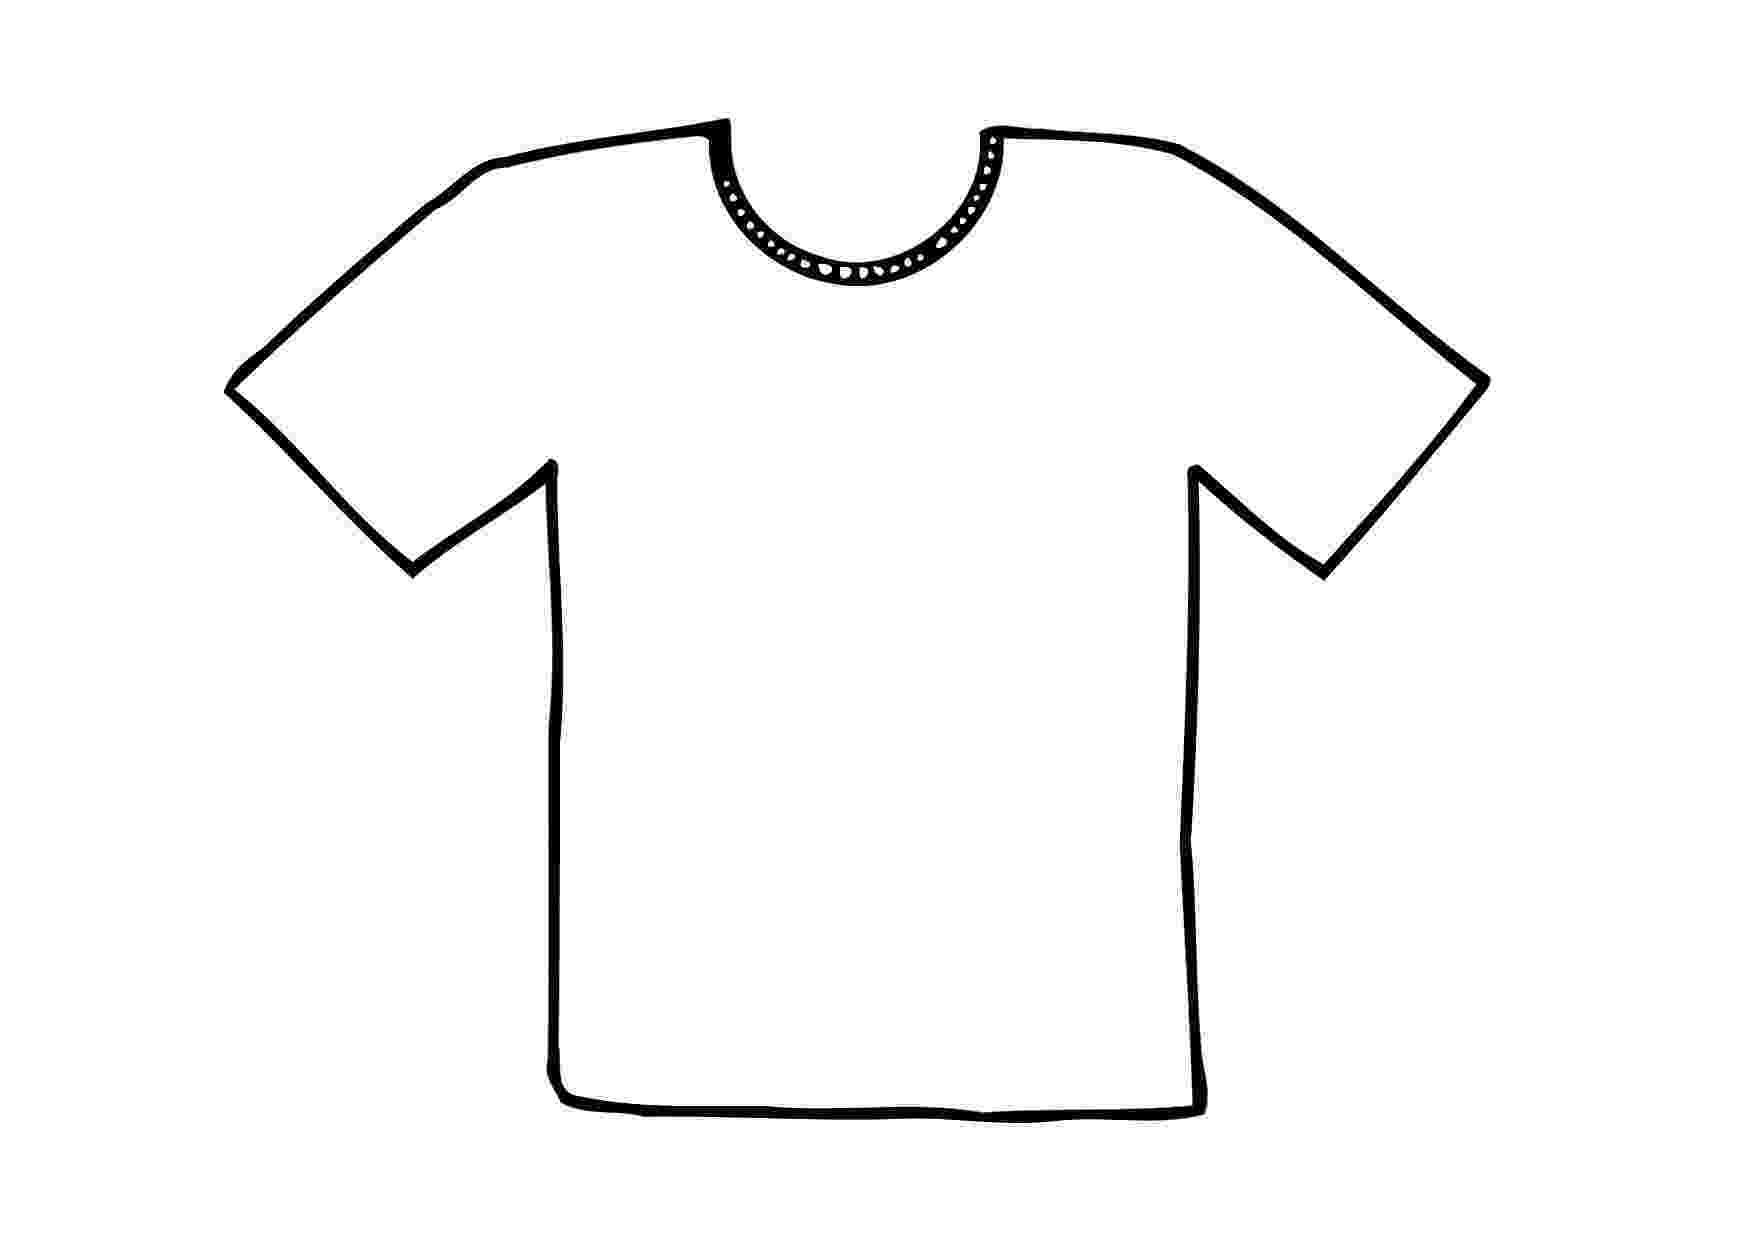 t shirt coloring page t shirt coloring clipart best page coloring t shirt